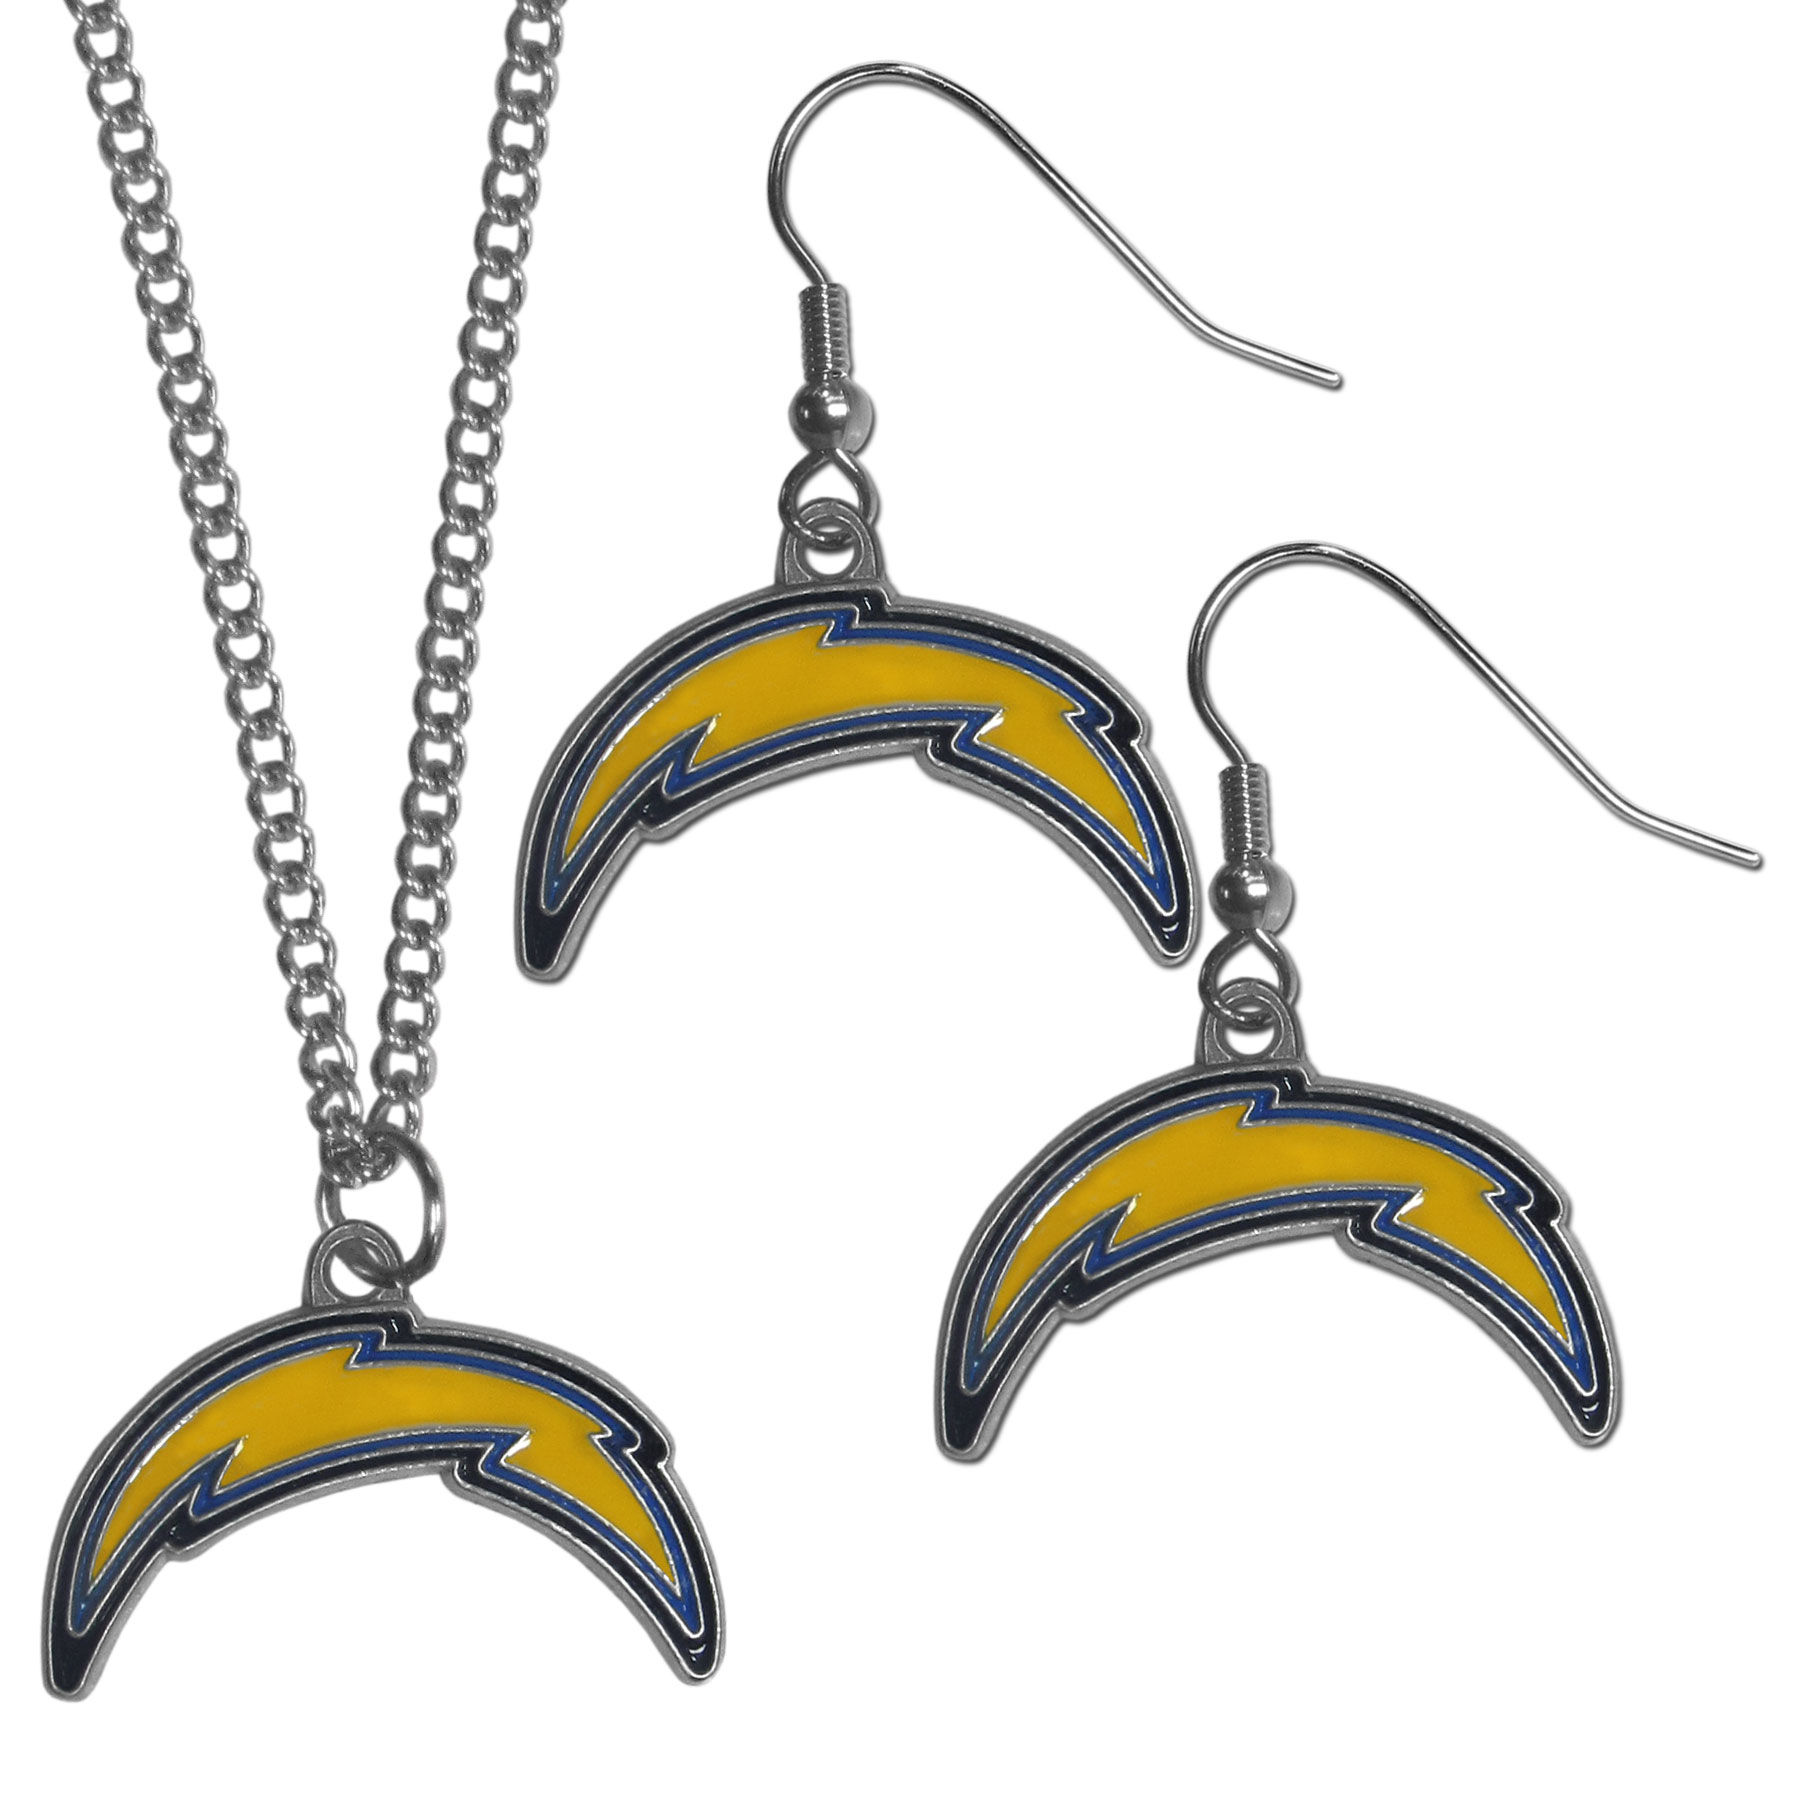 Los Angeles Chargers Dangle Earrings and Chain Necklace Set - This classic jewelry set contains are most popular Los Angeles Chargers dangle earrings and 22 inch chain necklace. The trendy, dangle earrings are lightweight and feature a fully cast metal team charm with enameled team colors. The matching necklace completes this fashion forward combo and is a spirited set that is perfect for game day but nice enough for everyday.